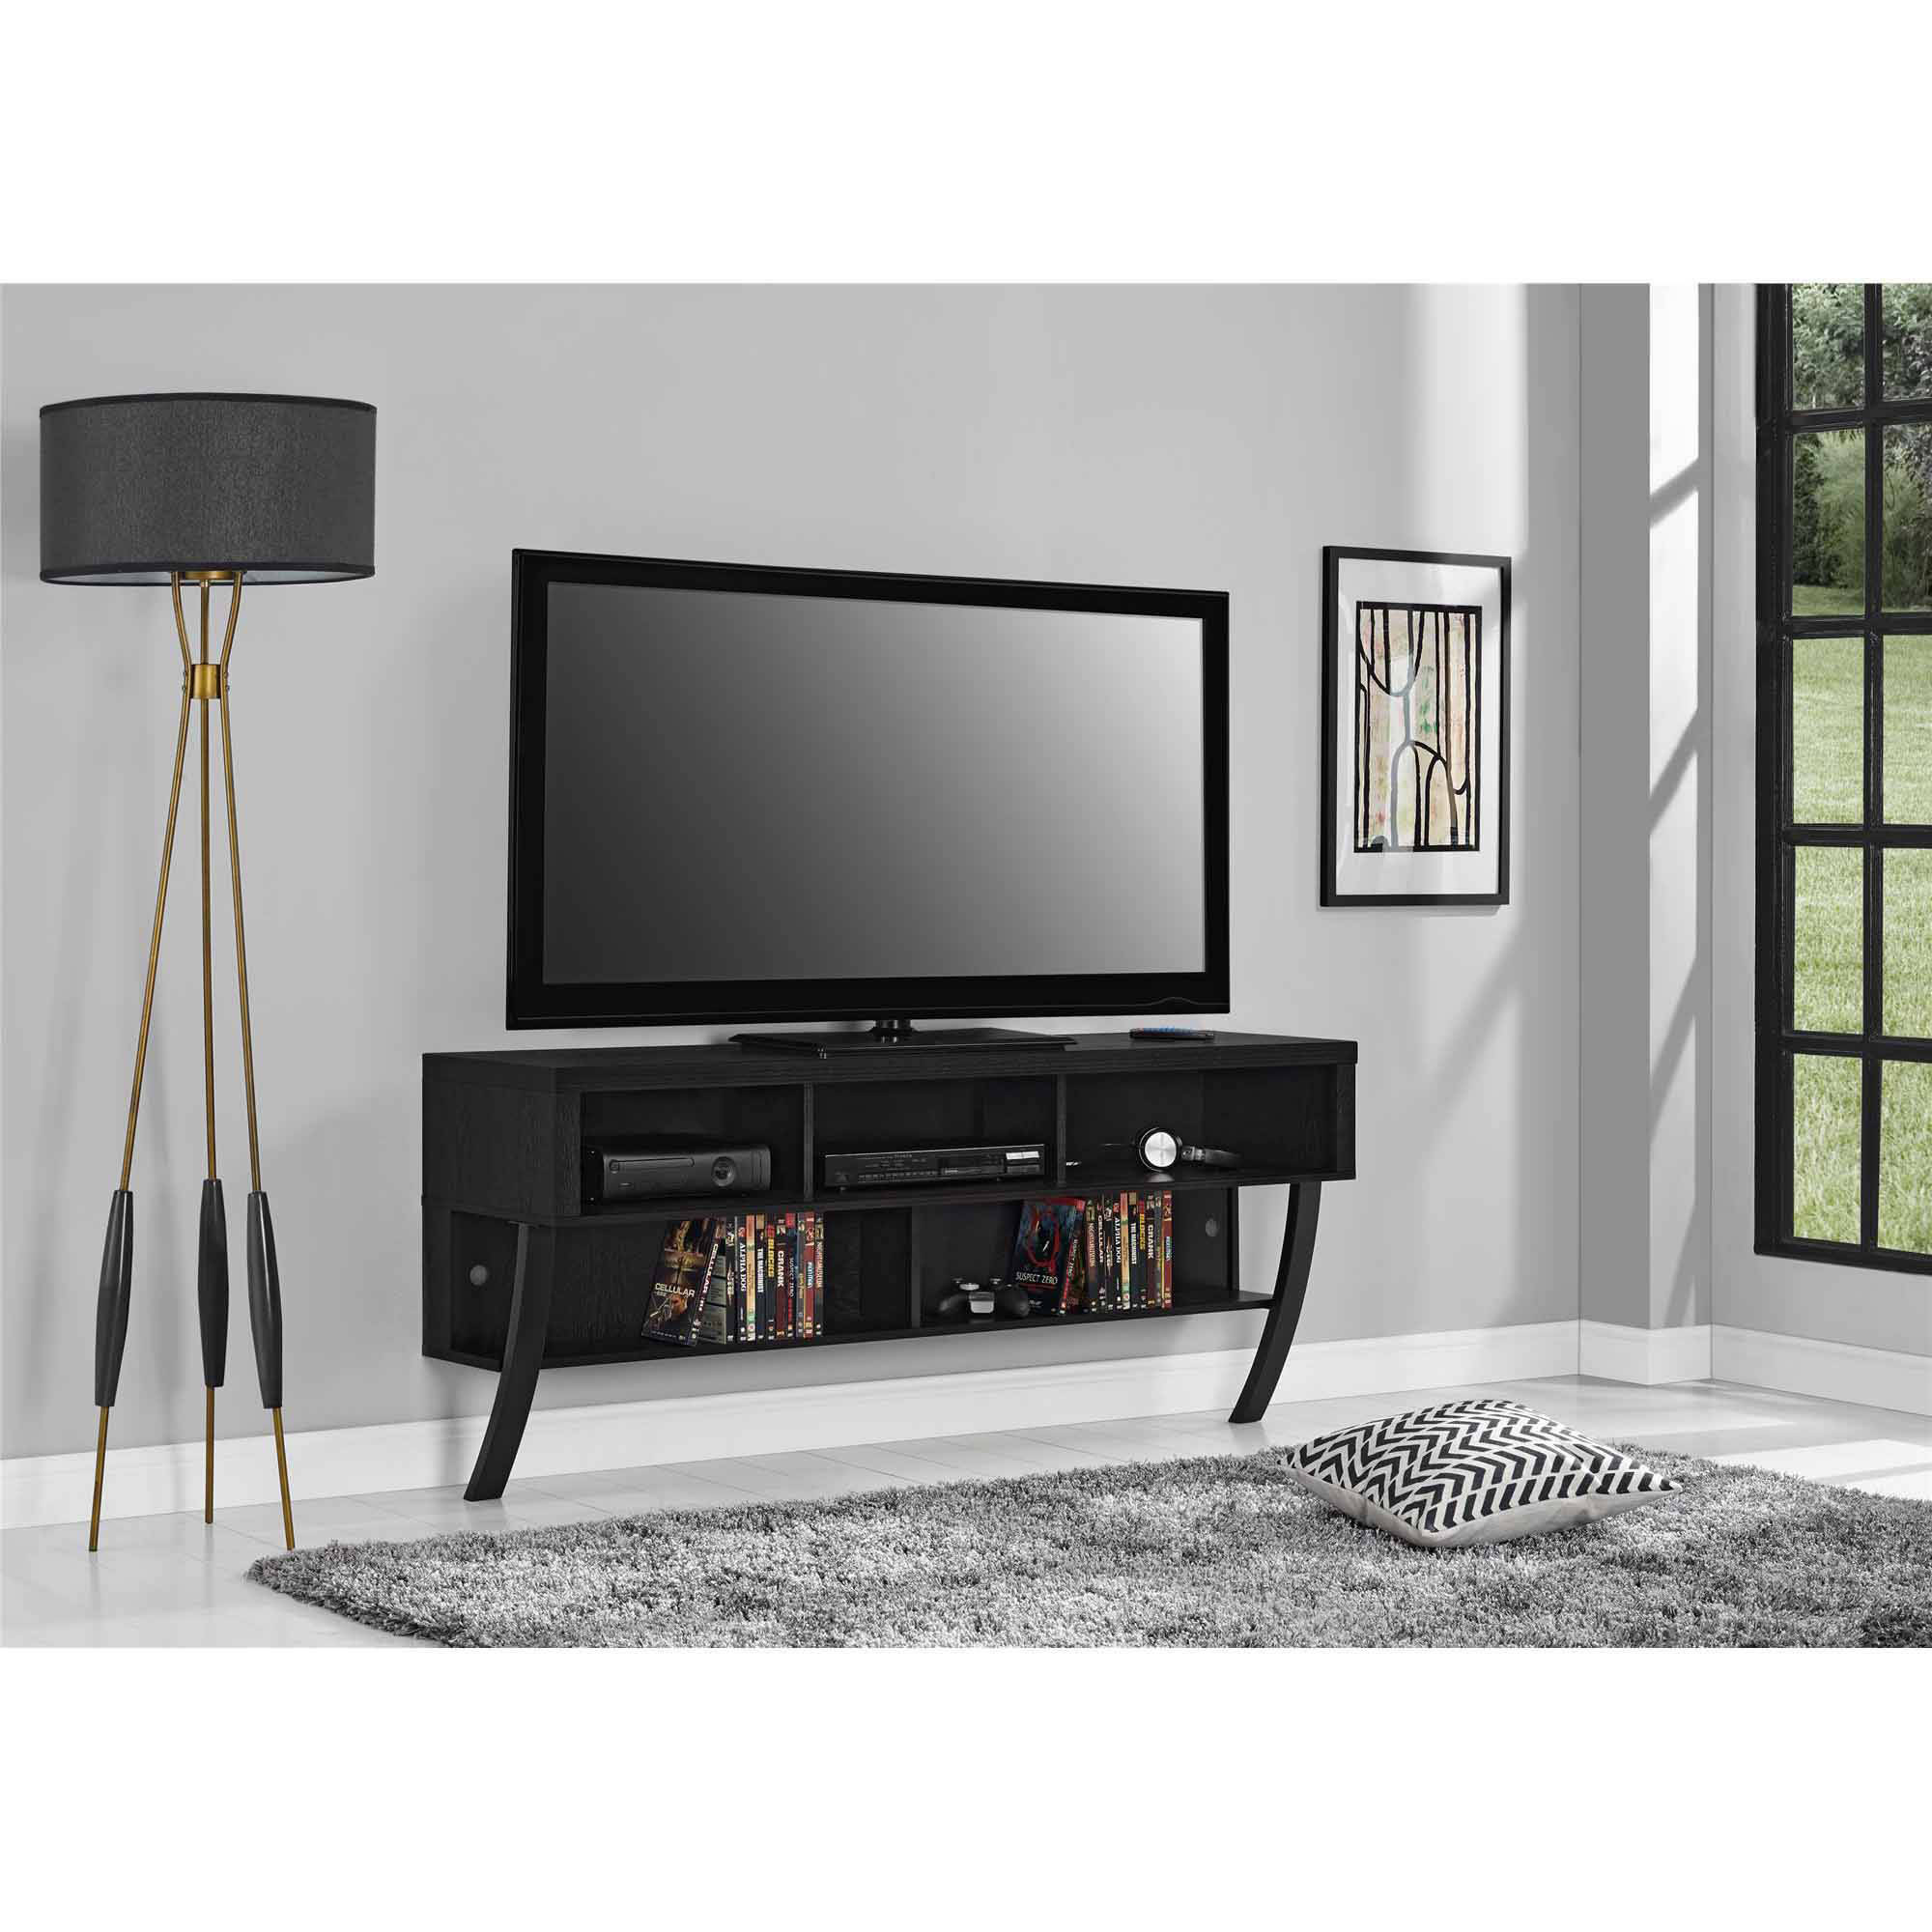 "Altra Asher Wall Mounted 65"" TV Stand, Black Oak"